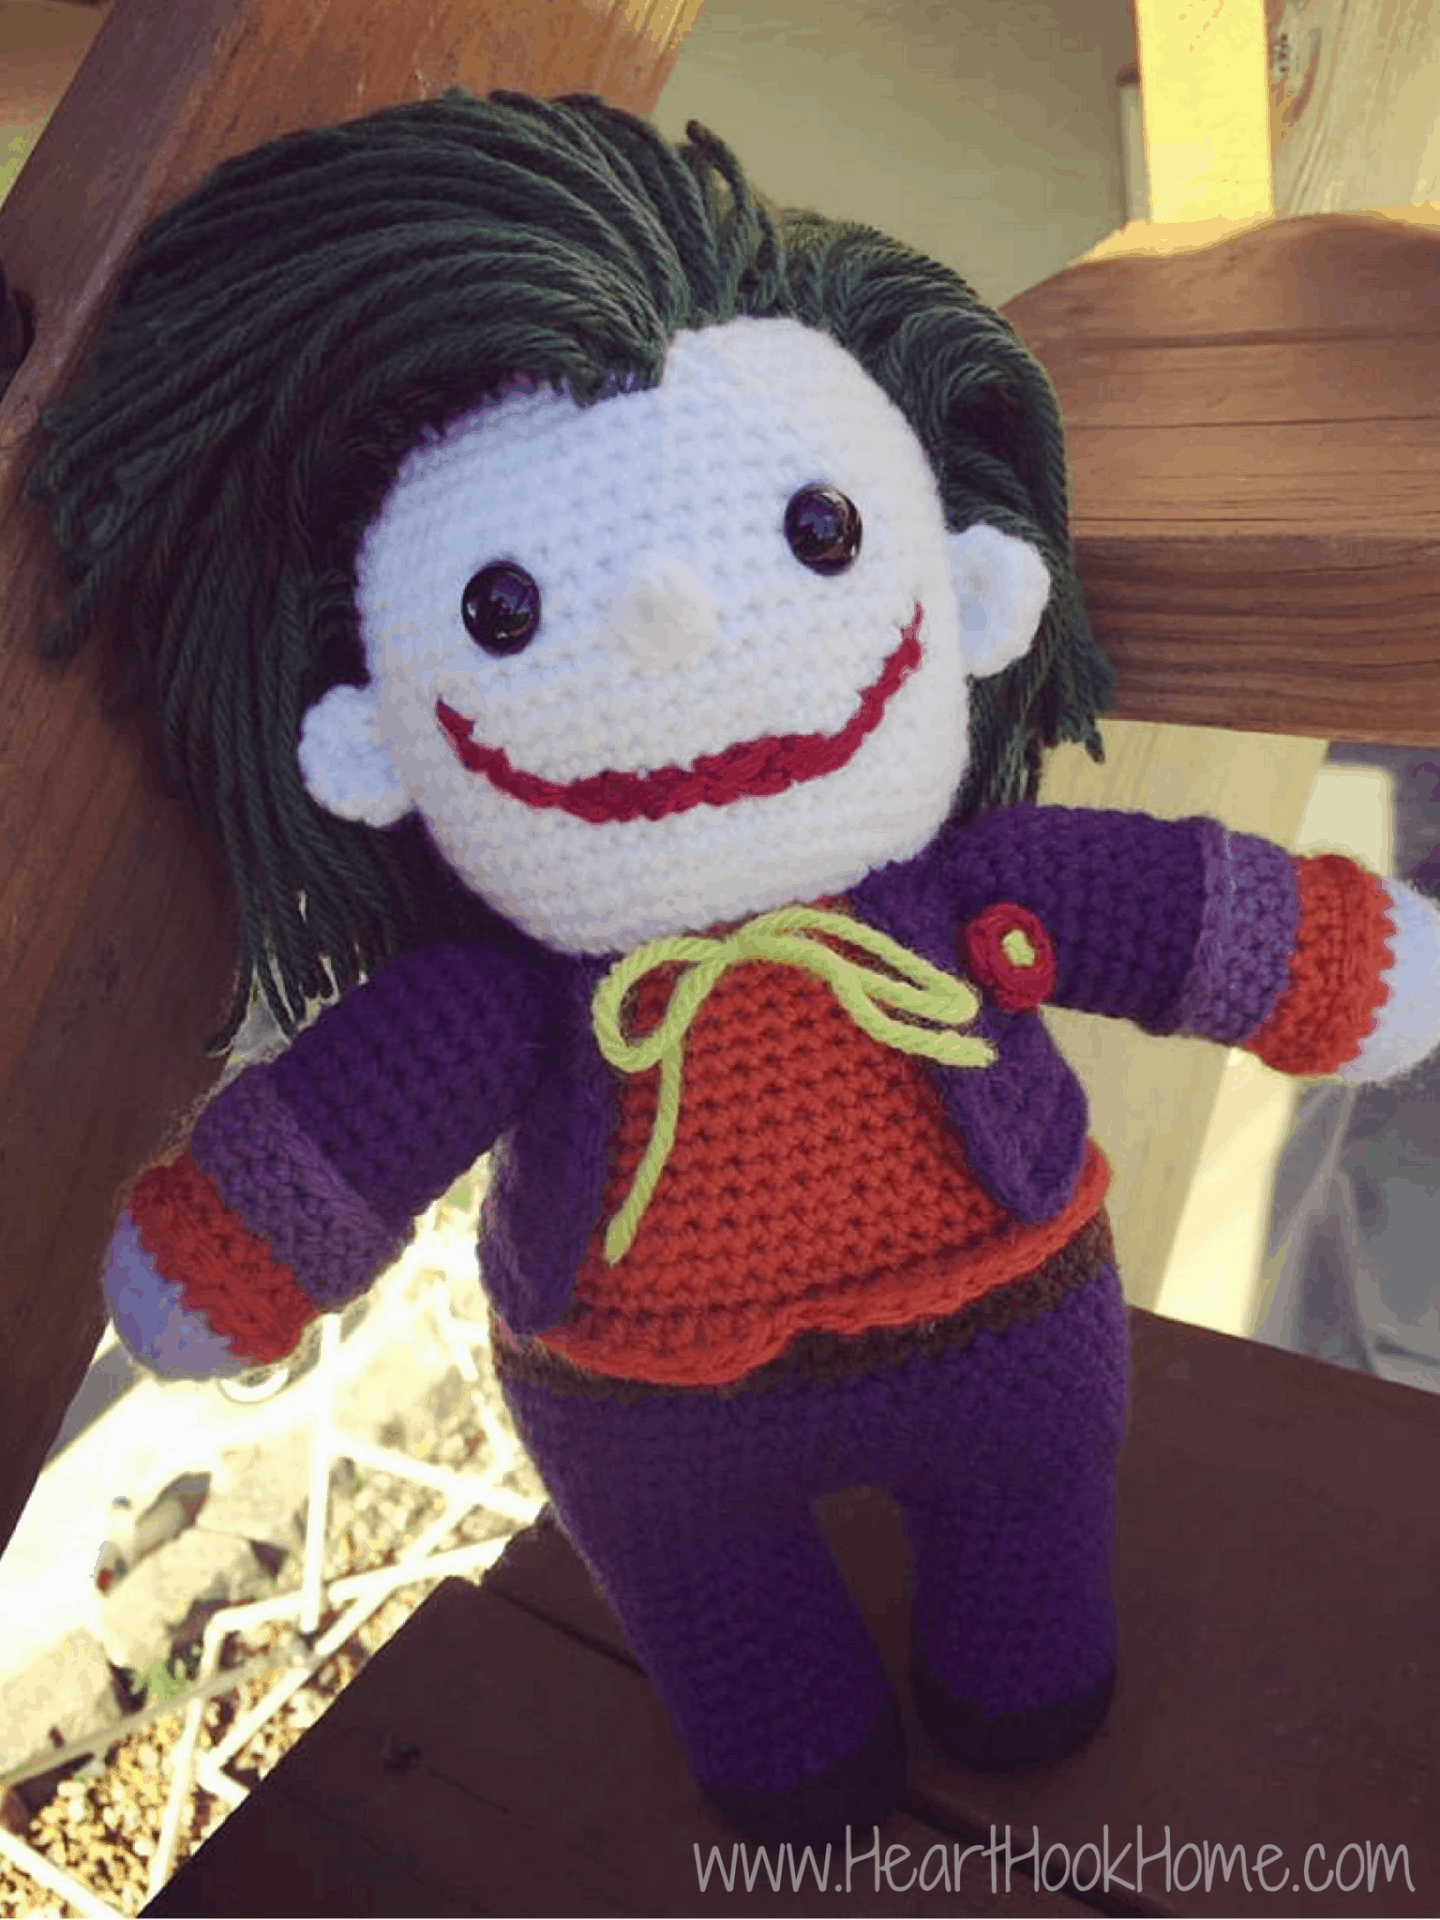 The Joker (Batman) Amigurumi Crochet Pattern